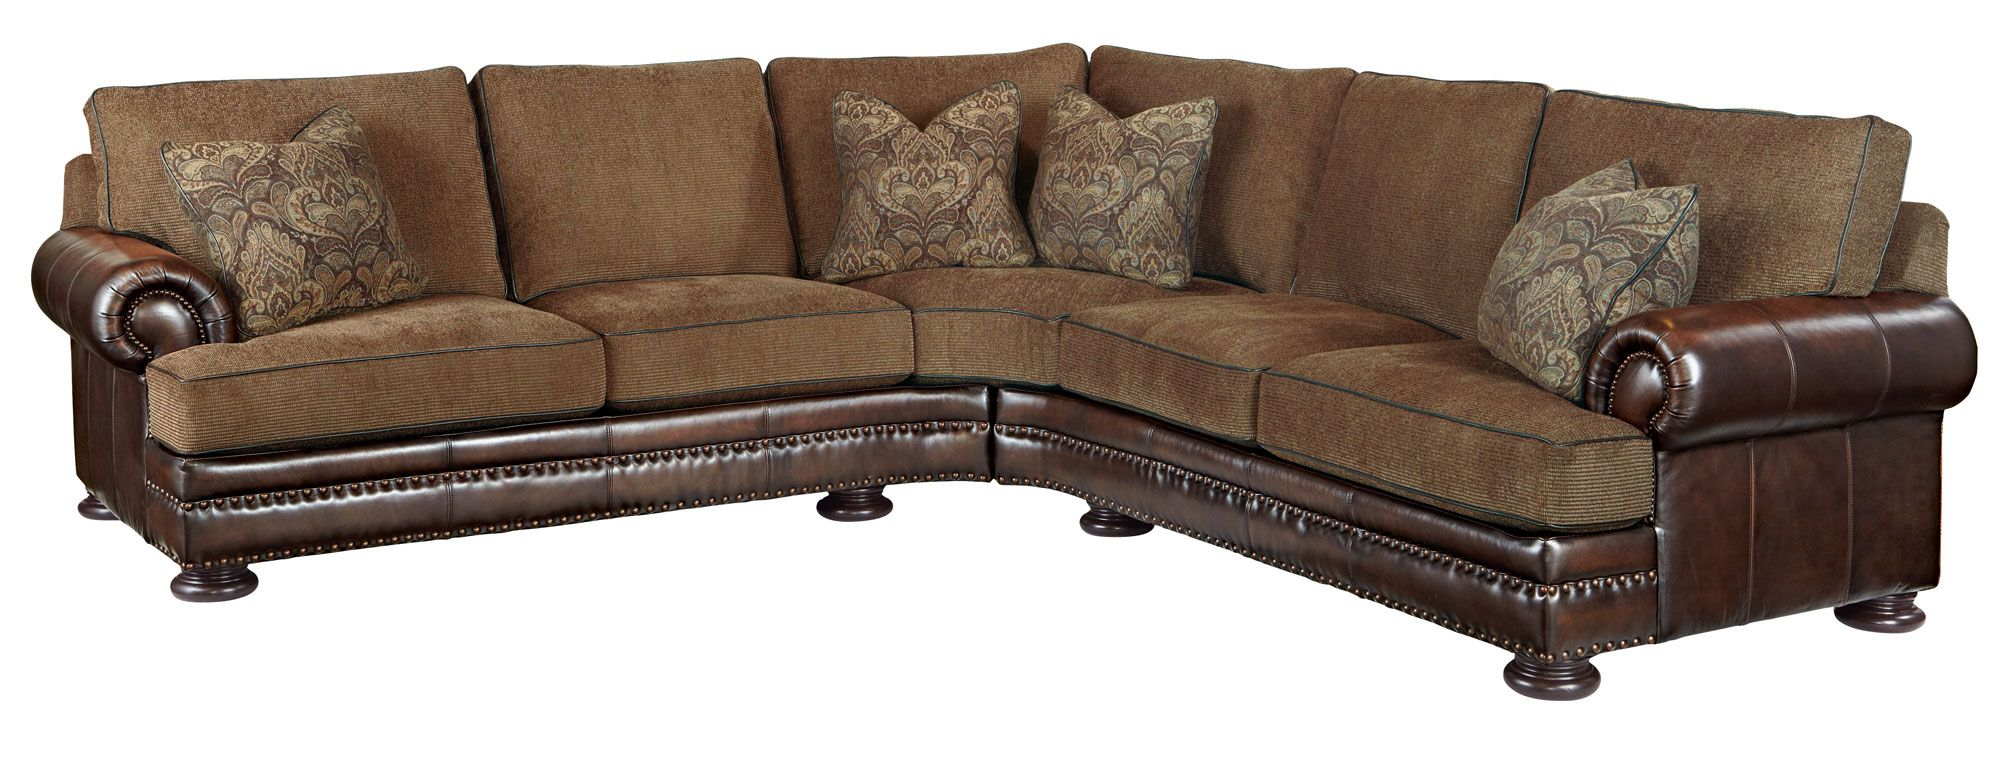 traditional sectional l shaped sofa design ideas for living room furniture with sweet brown. Black Bedroom Furniture Sets. Home Design Ideas